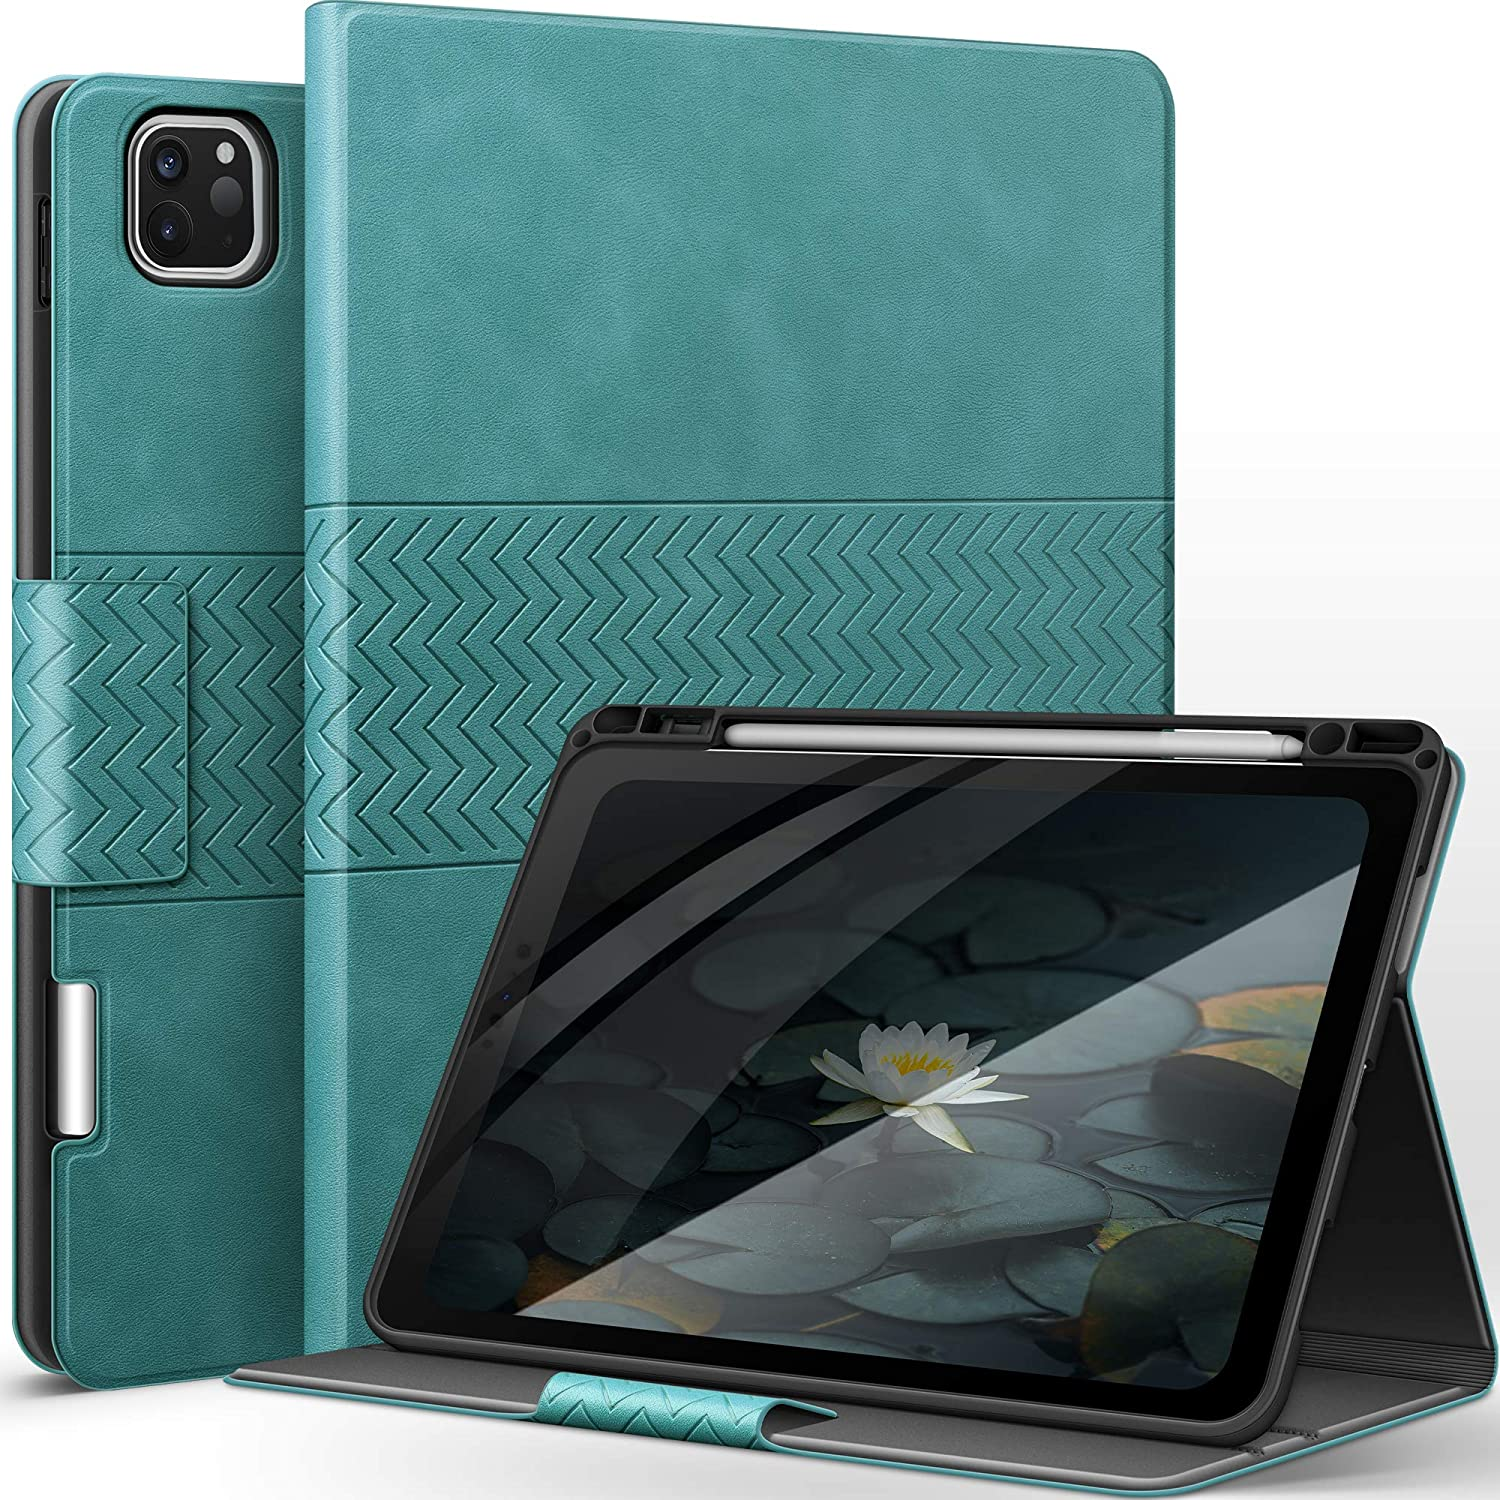 """Case for iPad Pro 11 2020/2018 with Pencil Holder Apple Pencil(2nd Gen) Wireless Charging/Pairing PU Leather Auto Sleep/Wake Smart Cover for iPad Pro 11"""" 2020/2018 (Green)"""